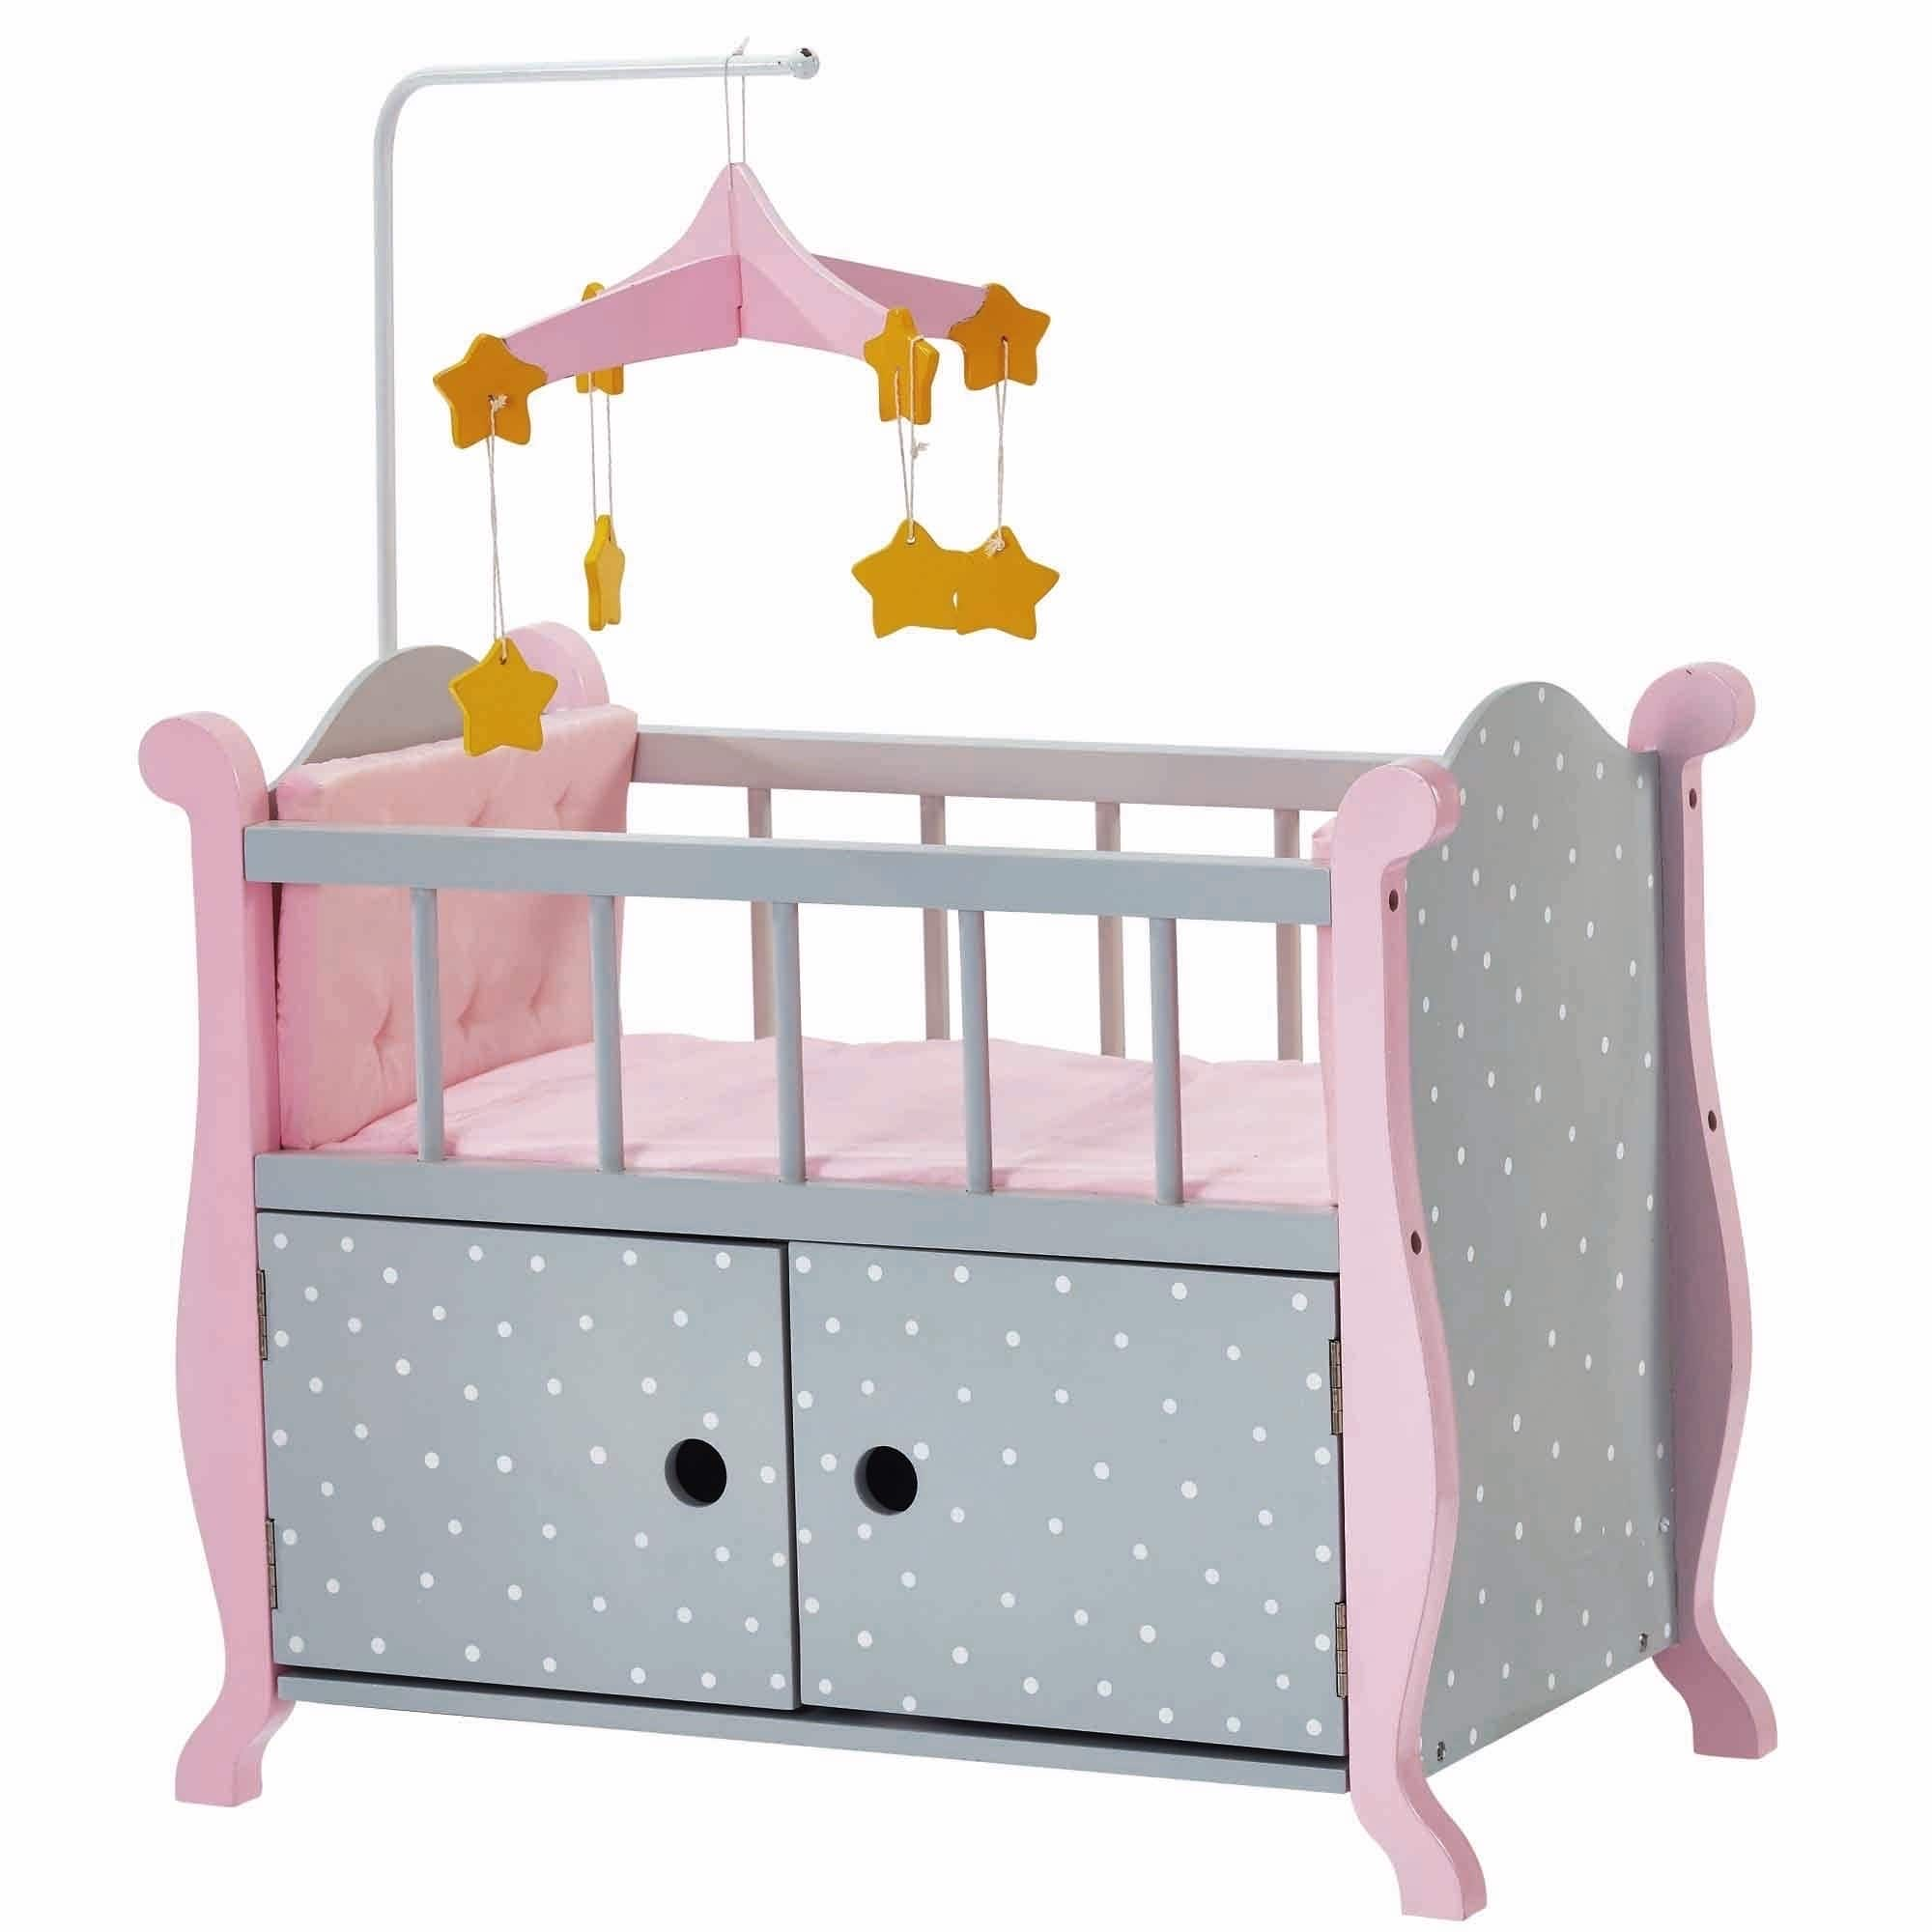 Oliviau0027s Little World   Polka Dots Princess Baby Doll Nursery Bed With  Cabinet   Grey